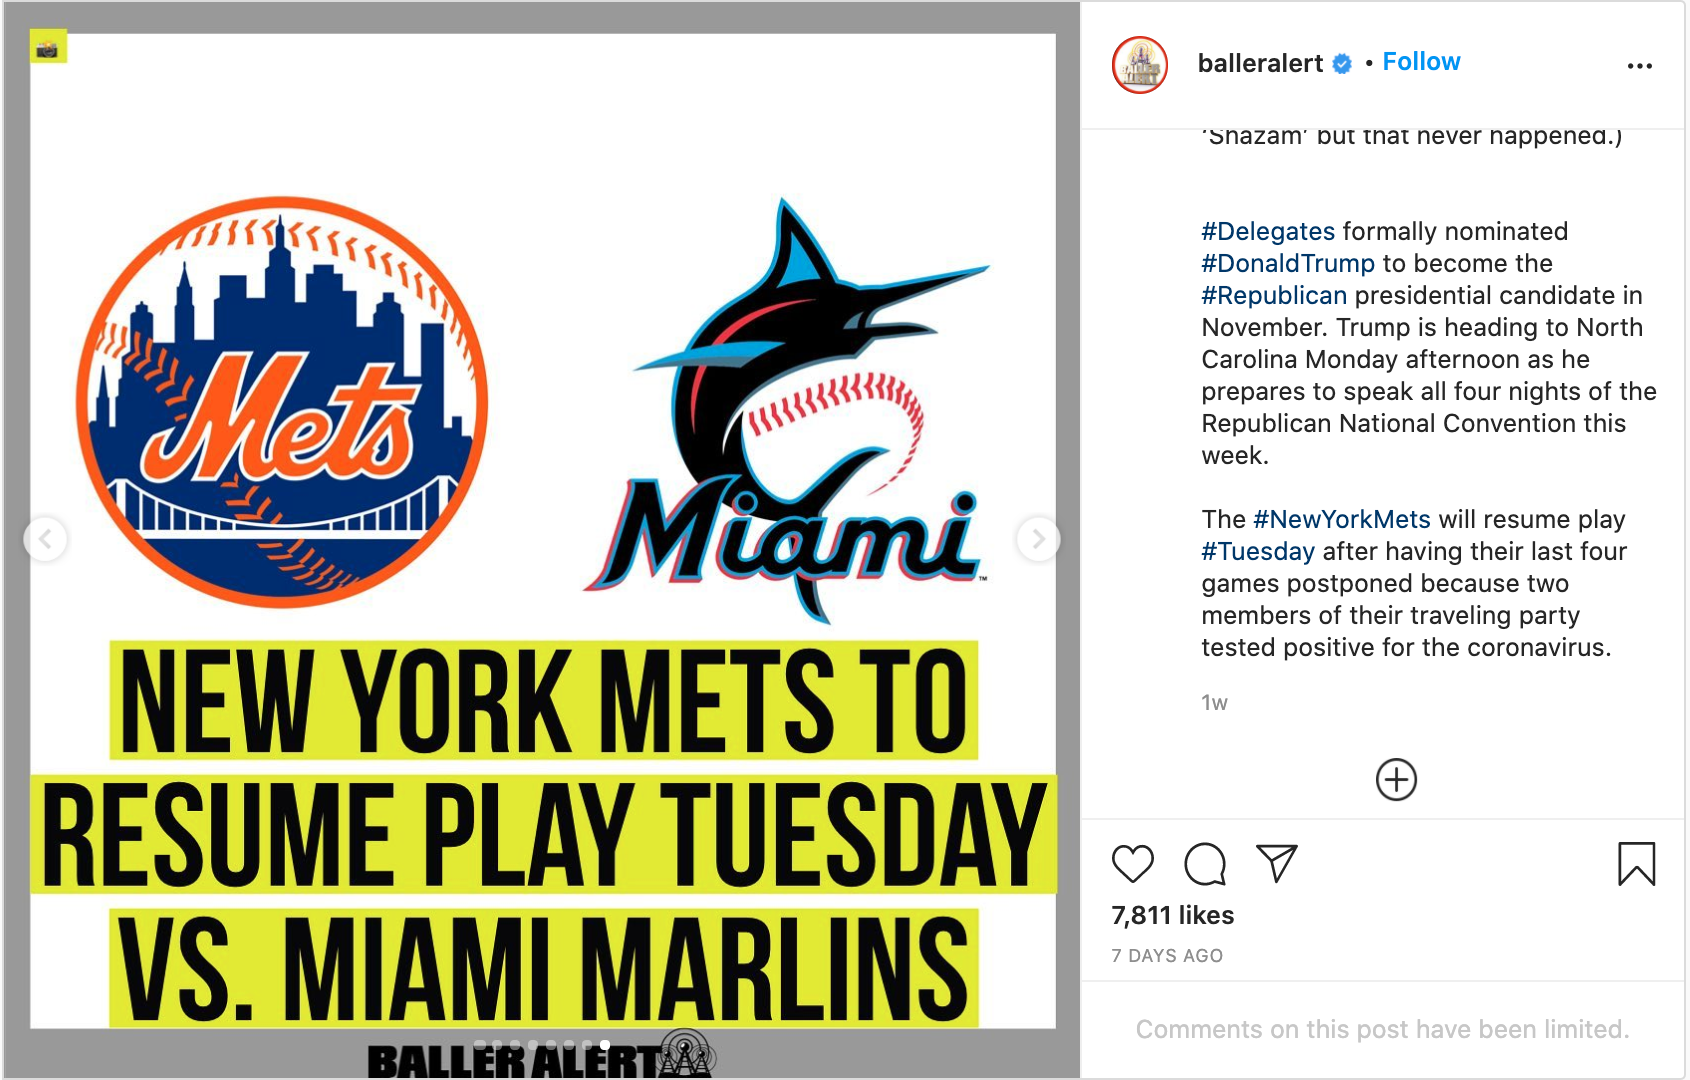 nymets insta post 2